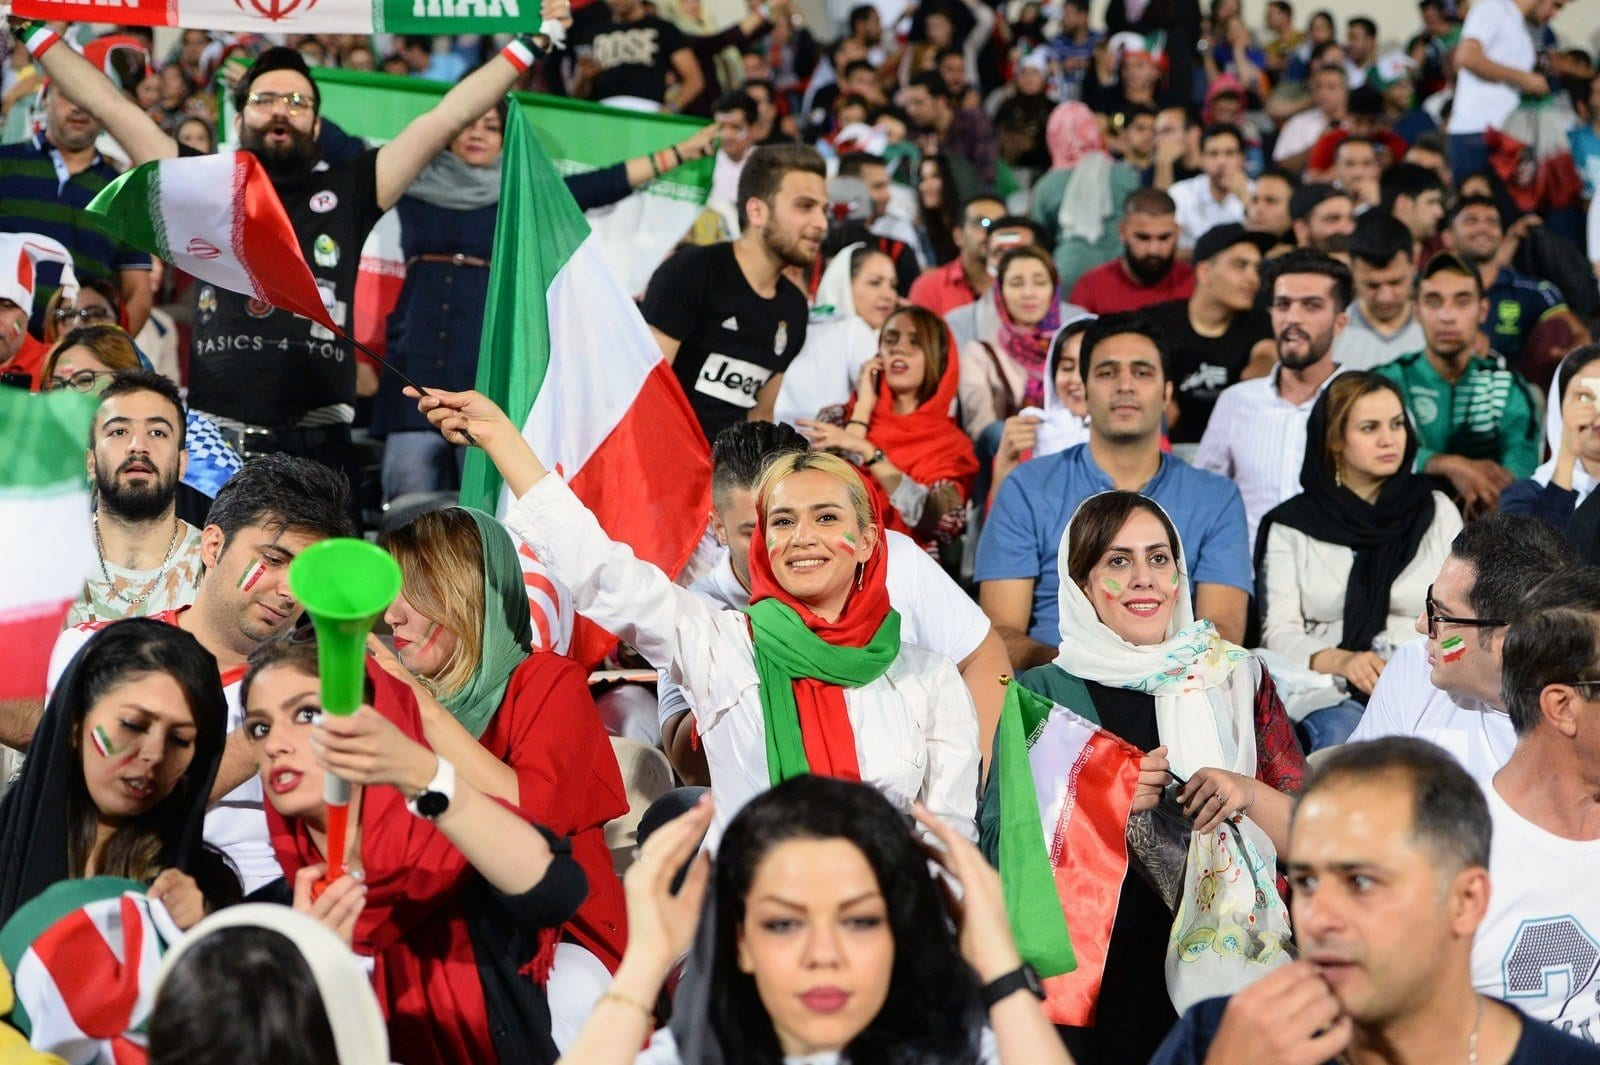 Image [A diverse crowd of Iranians in Tehran watch the World Cup after a 40 year prohibition against women attending public sporting events. June 20, 2018, Azadi Stadium, Tehran. (ANADOLU AGENCY)]